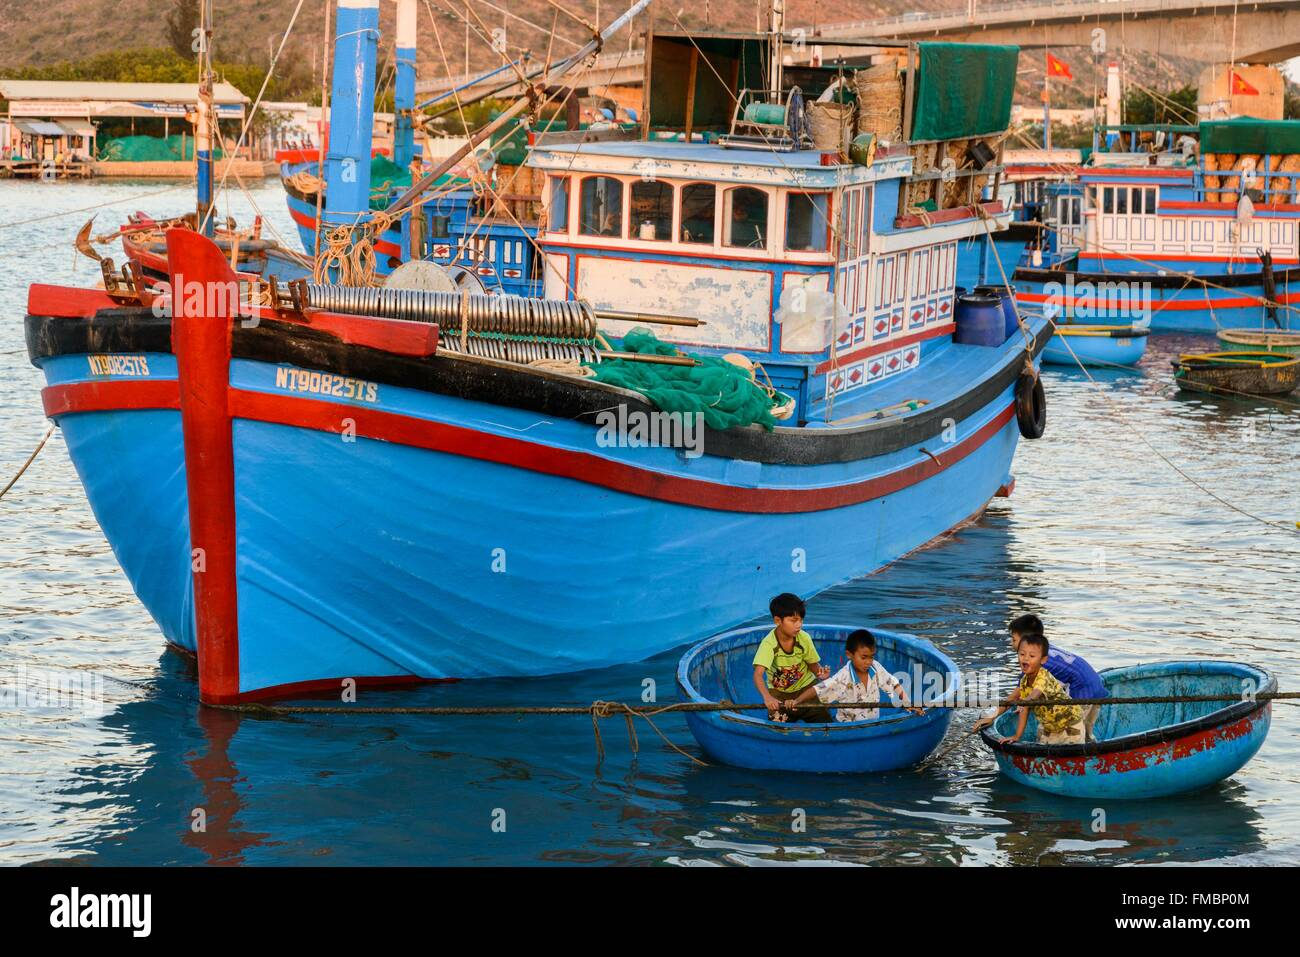 Vietnam, Ninh Thuan province, Phan Rang, the fishing port - Stock Image